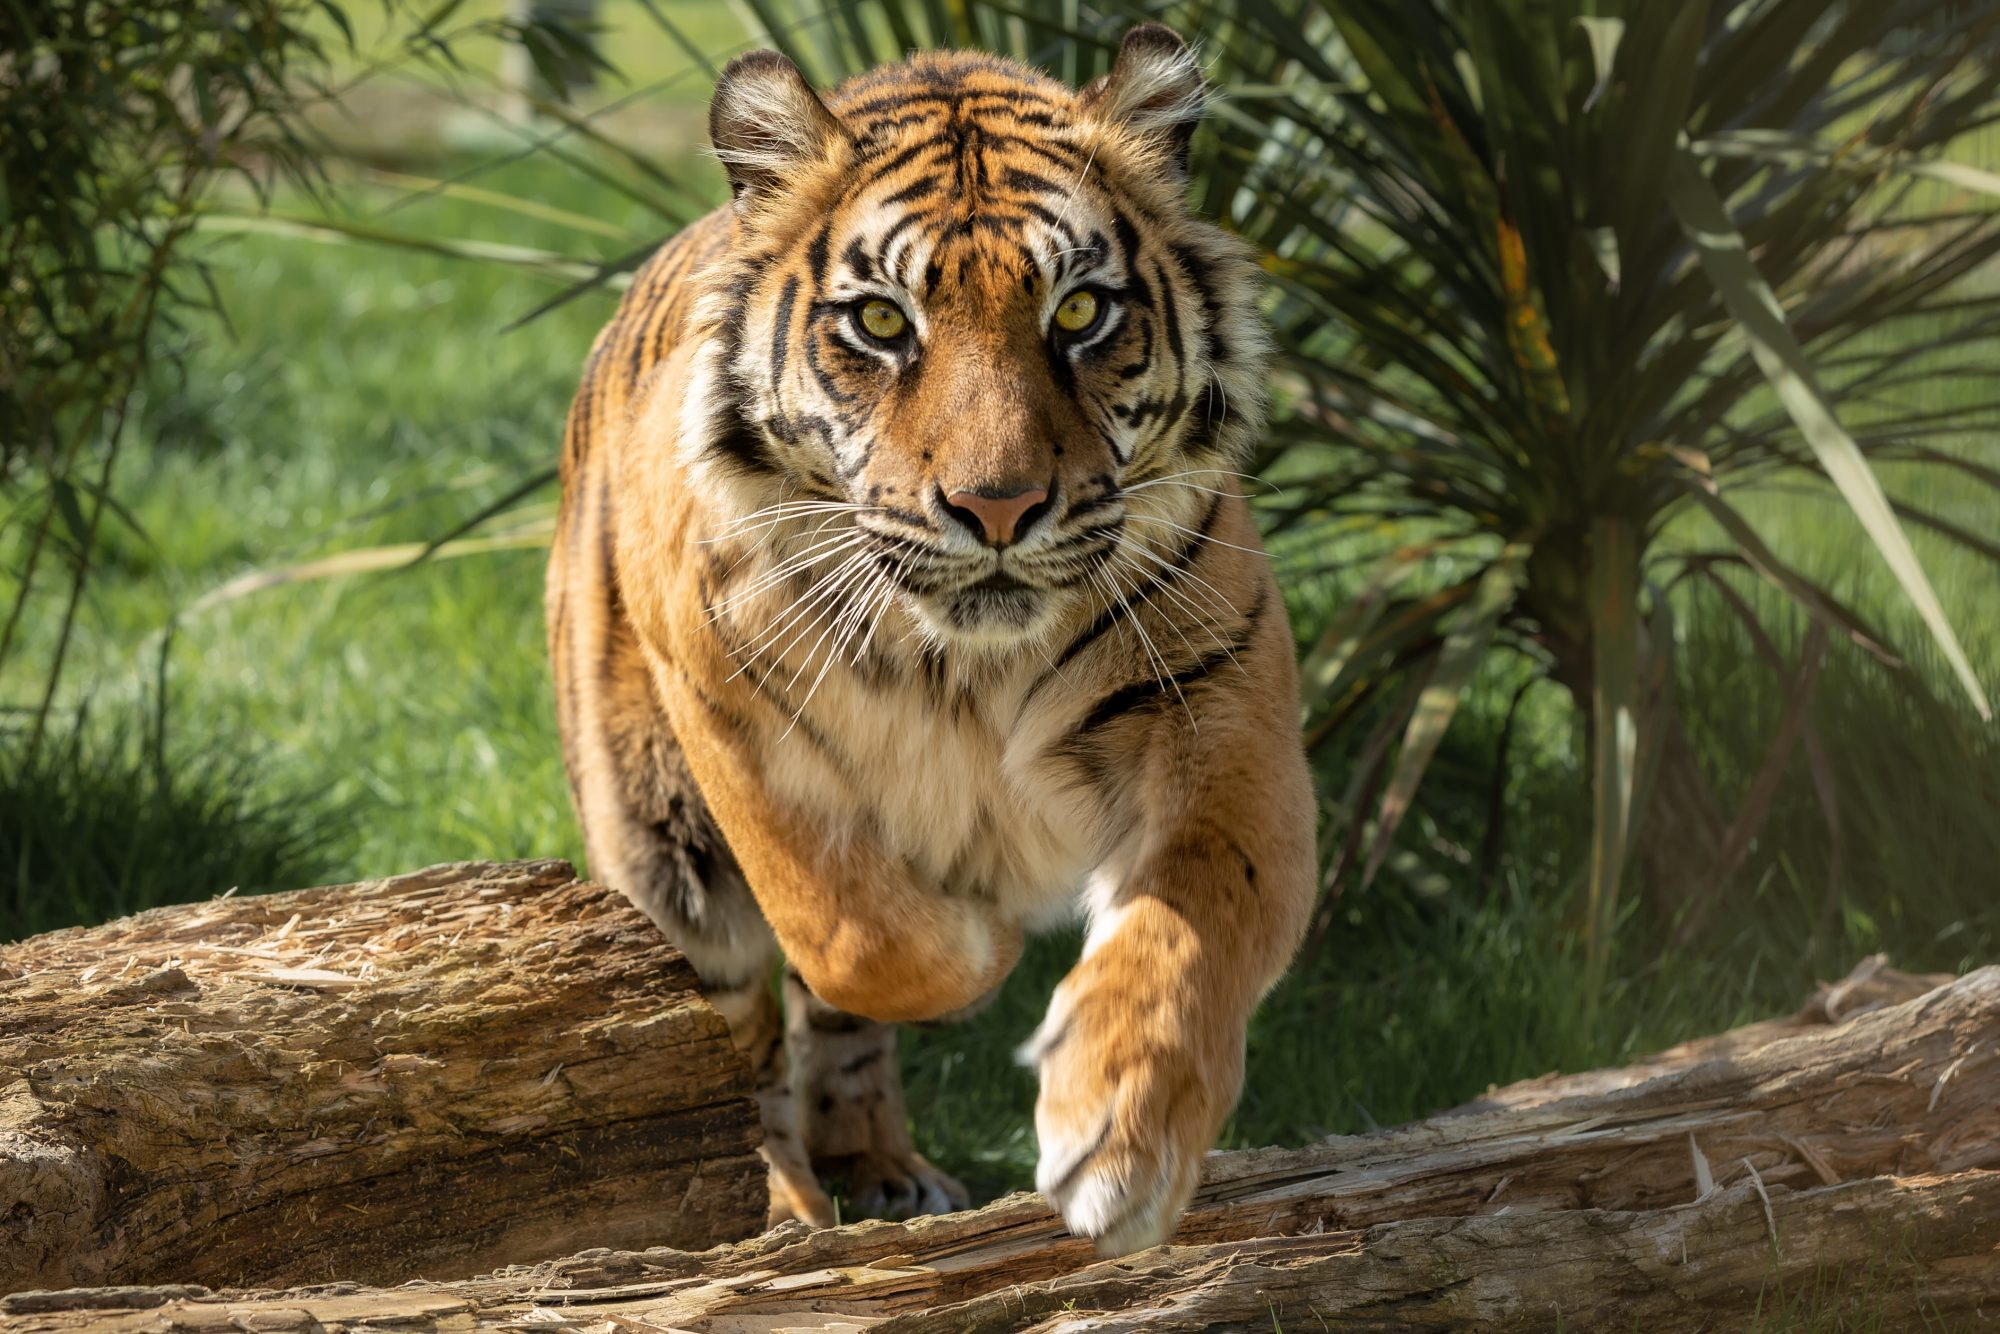 Big Cats Love Perfume, Zookeepers Say